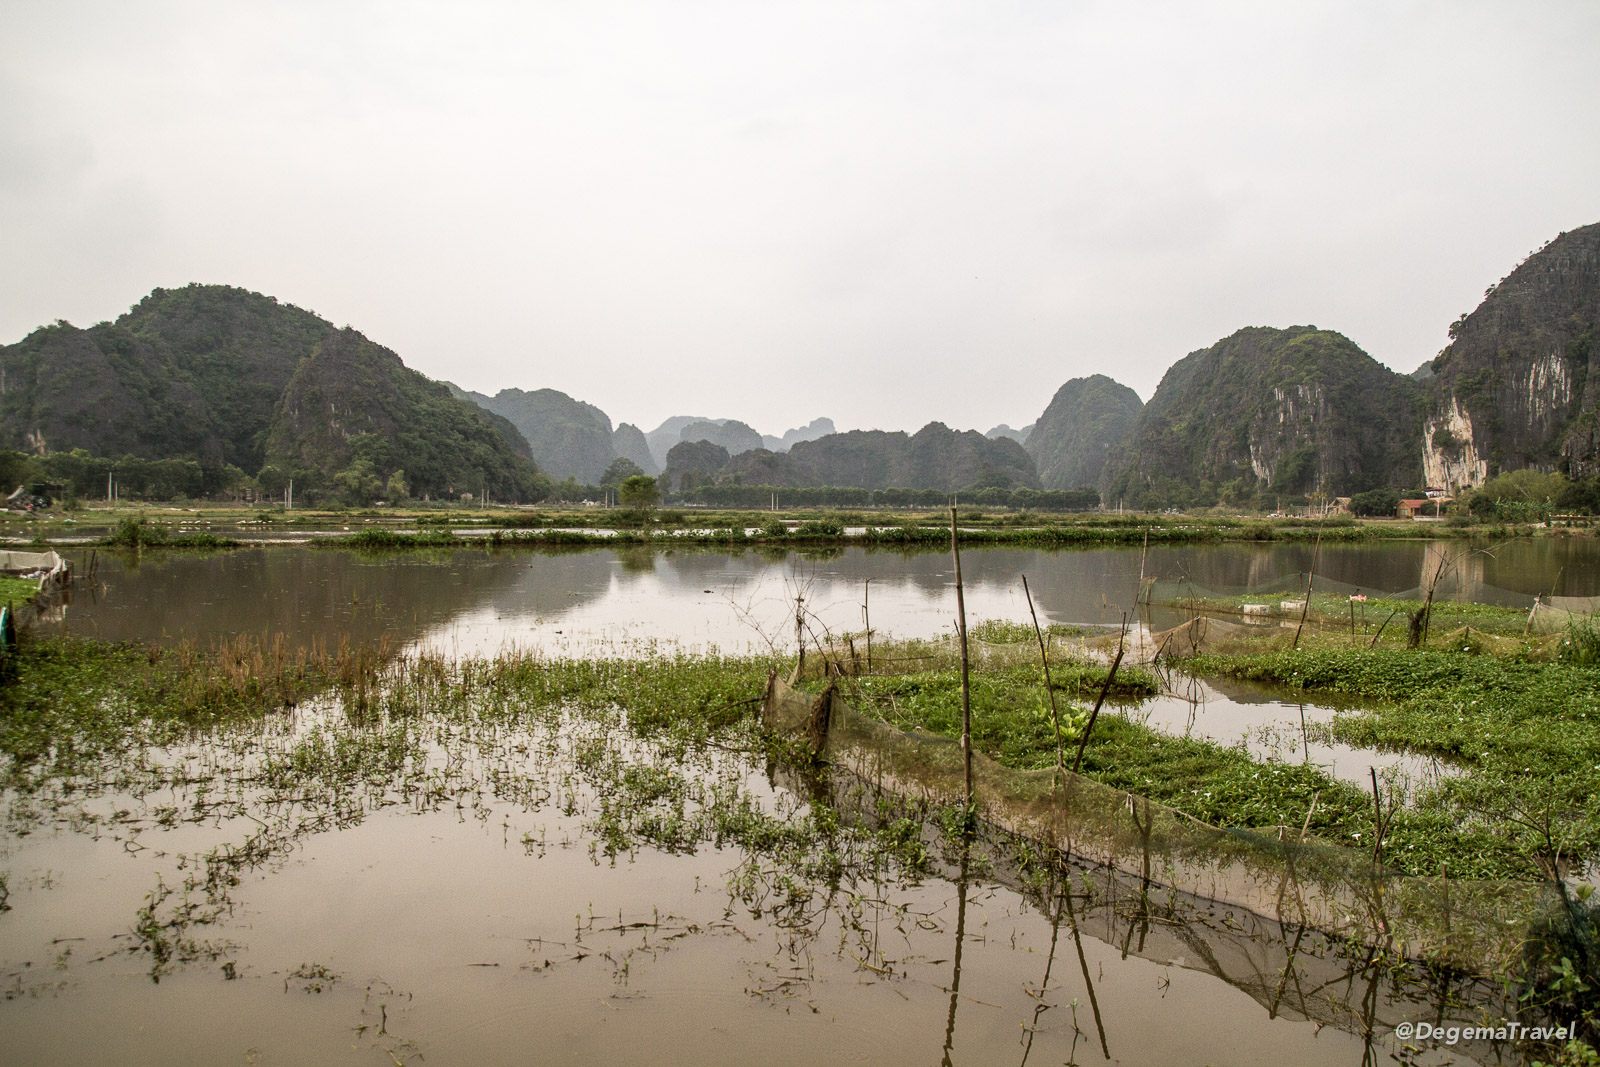 A misty morning in Tam Coc near Ninh Binh, Vietnam